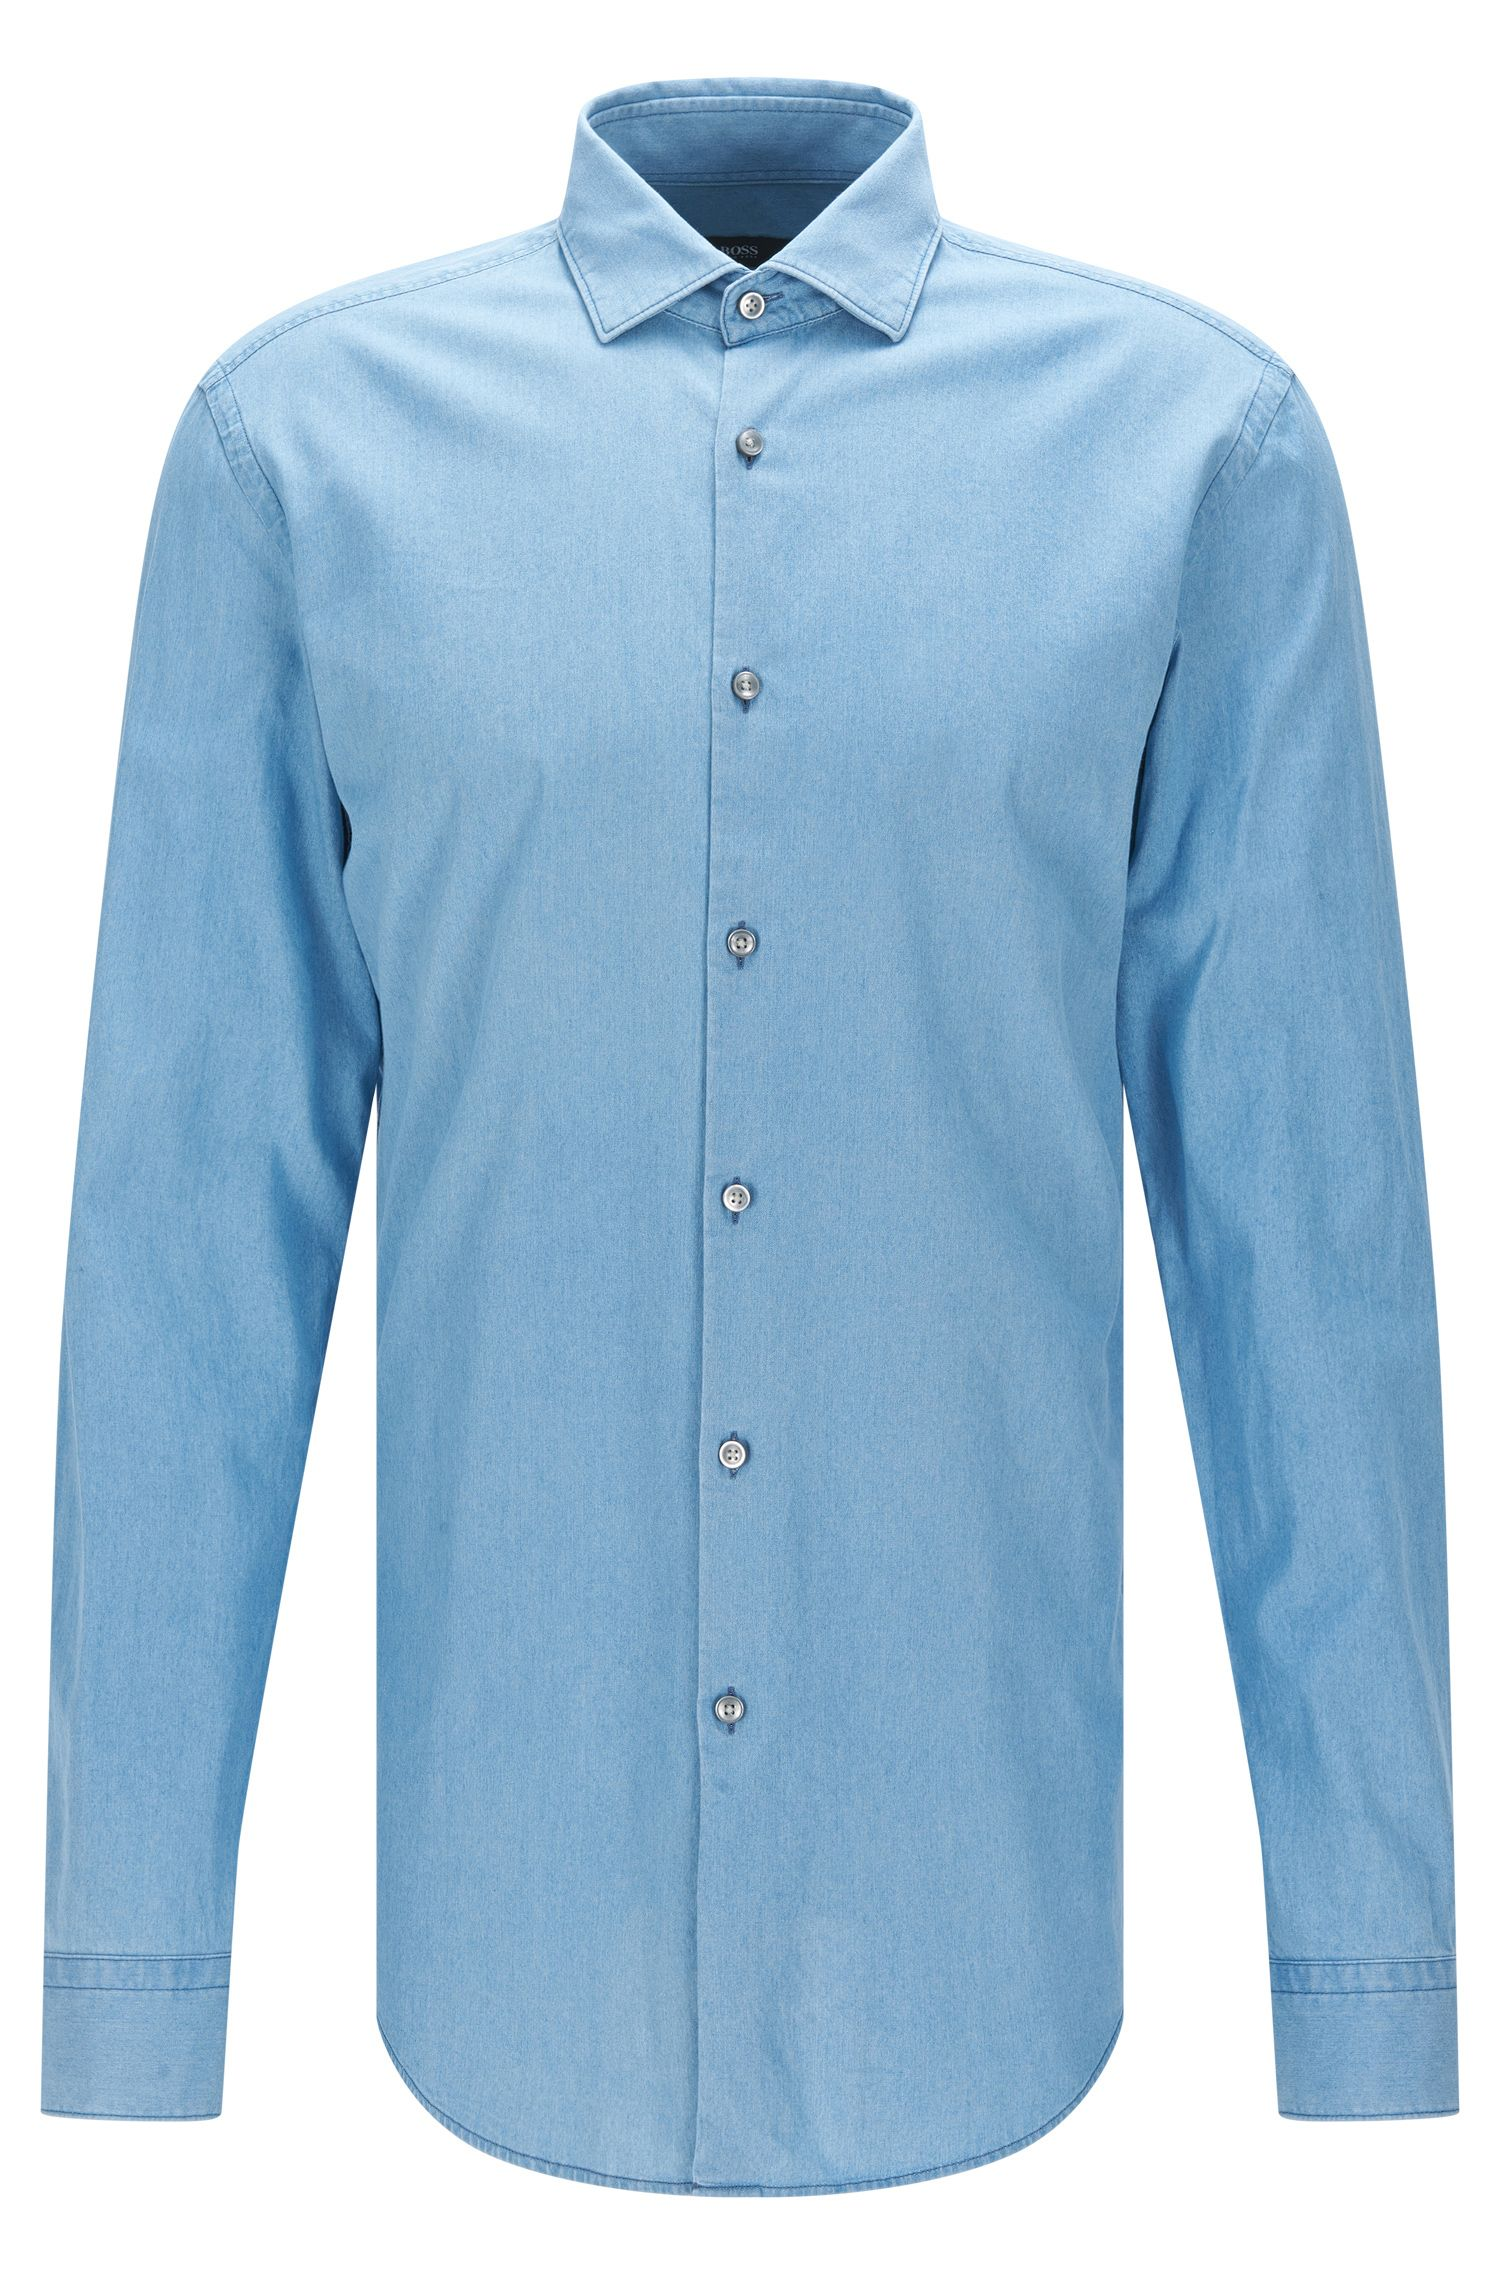 Regular-fit shirt in soft Italian denim